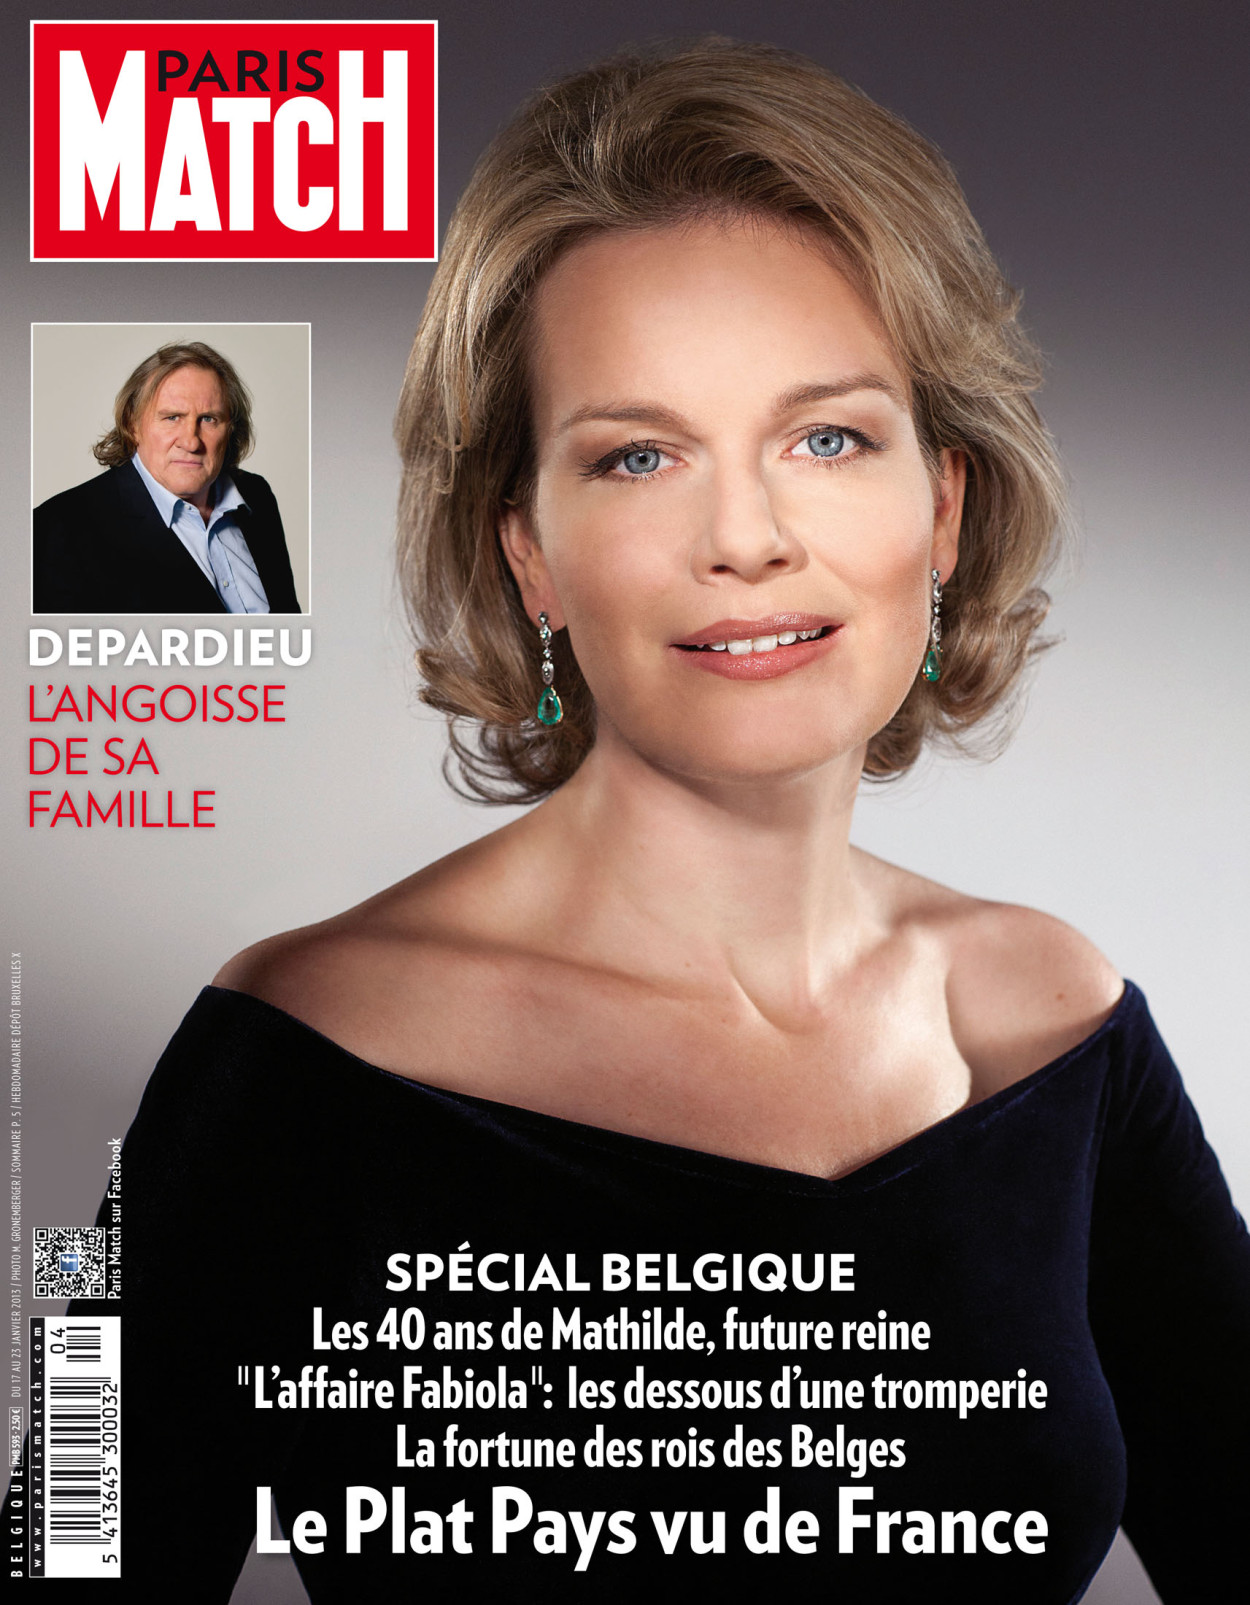 Couverture-Paris-Match-Reine-Mathilde.jpg